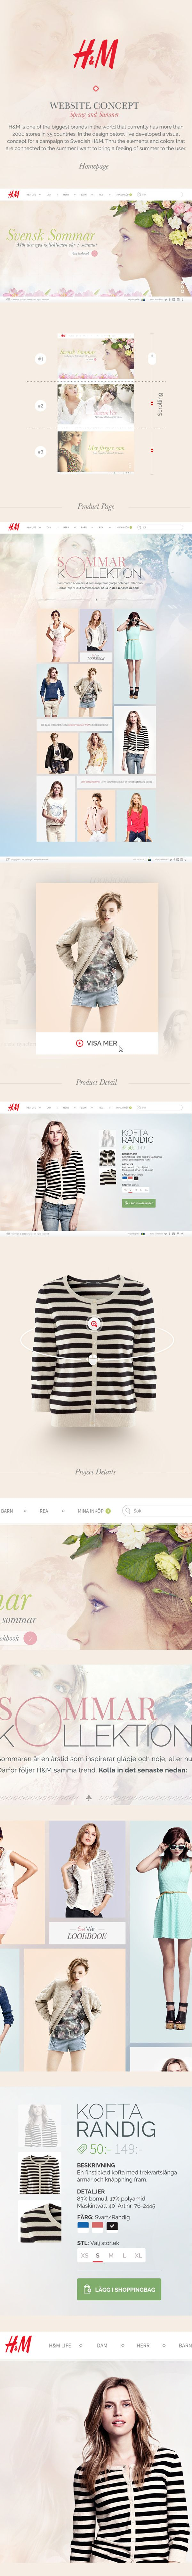 H&M Website by Hugo Albönete, via Behance